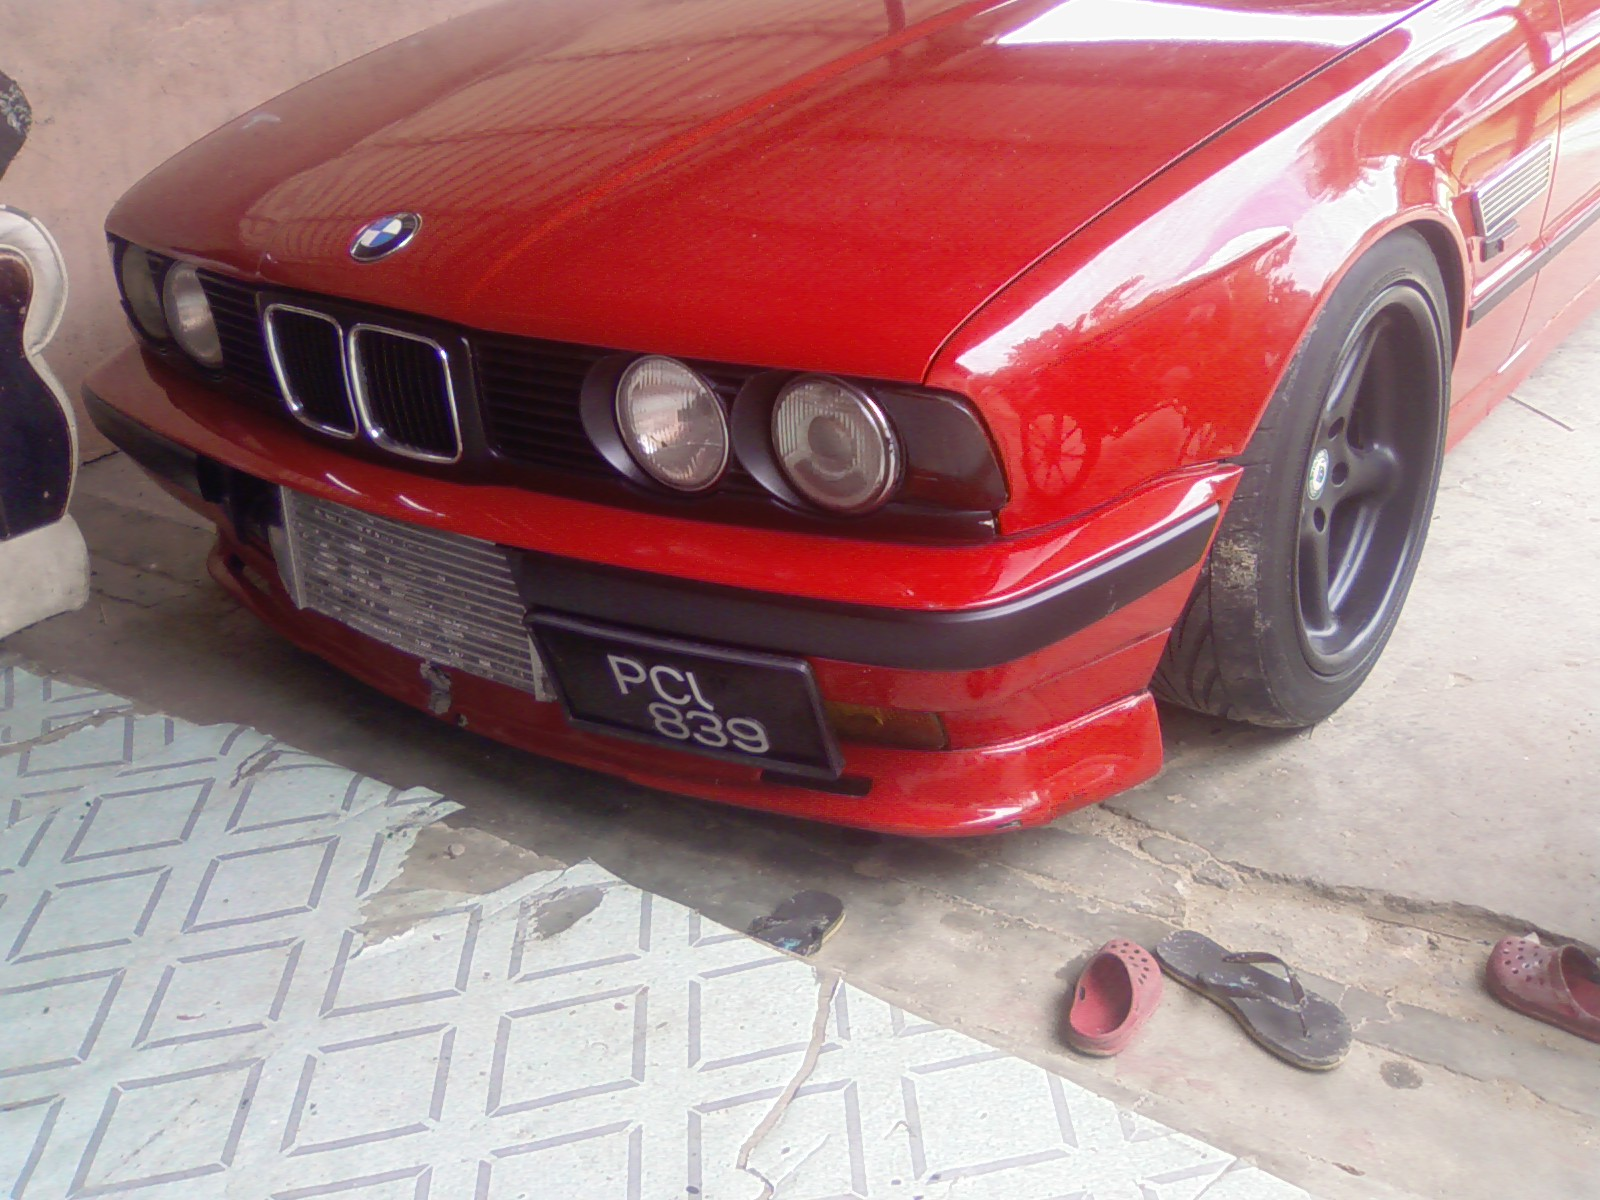 bmw 525 e34 with rb20 det r32 engine for sale-3.bp.blogspot.com